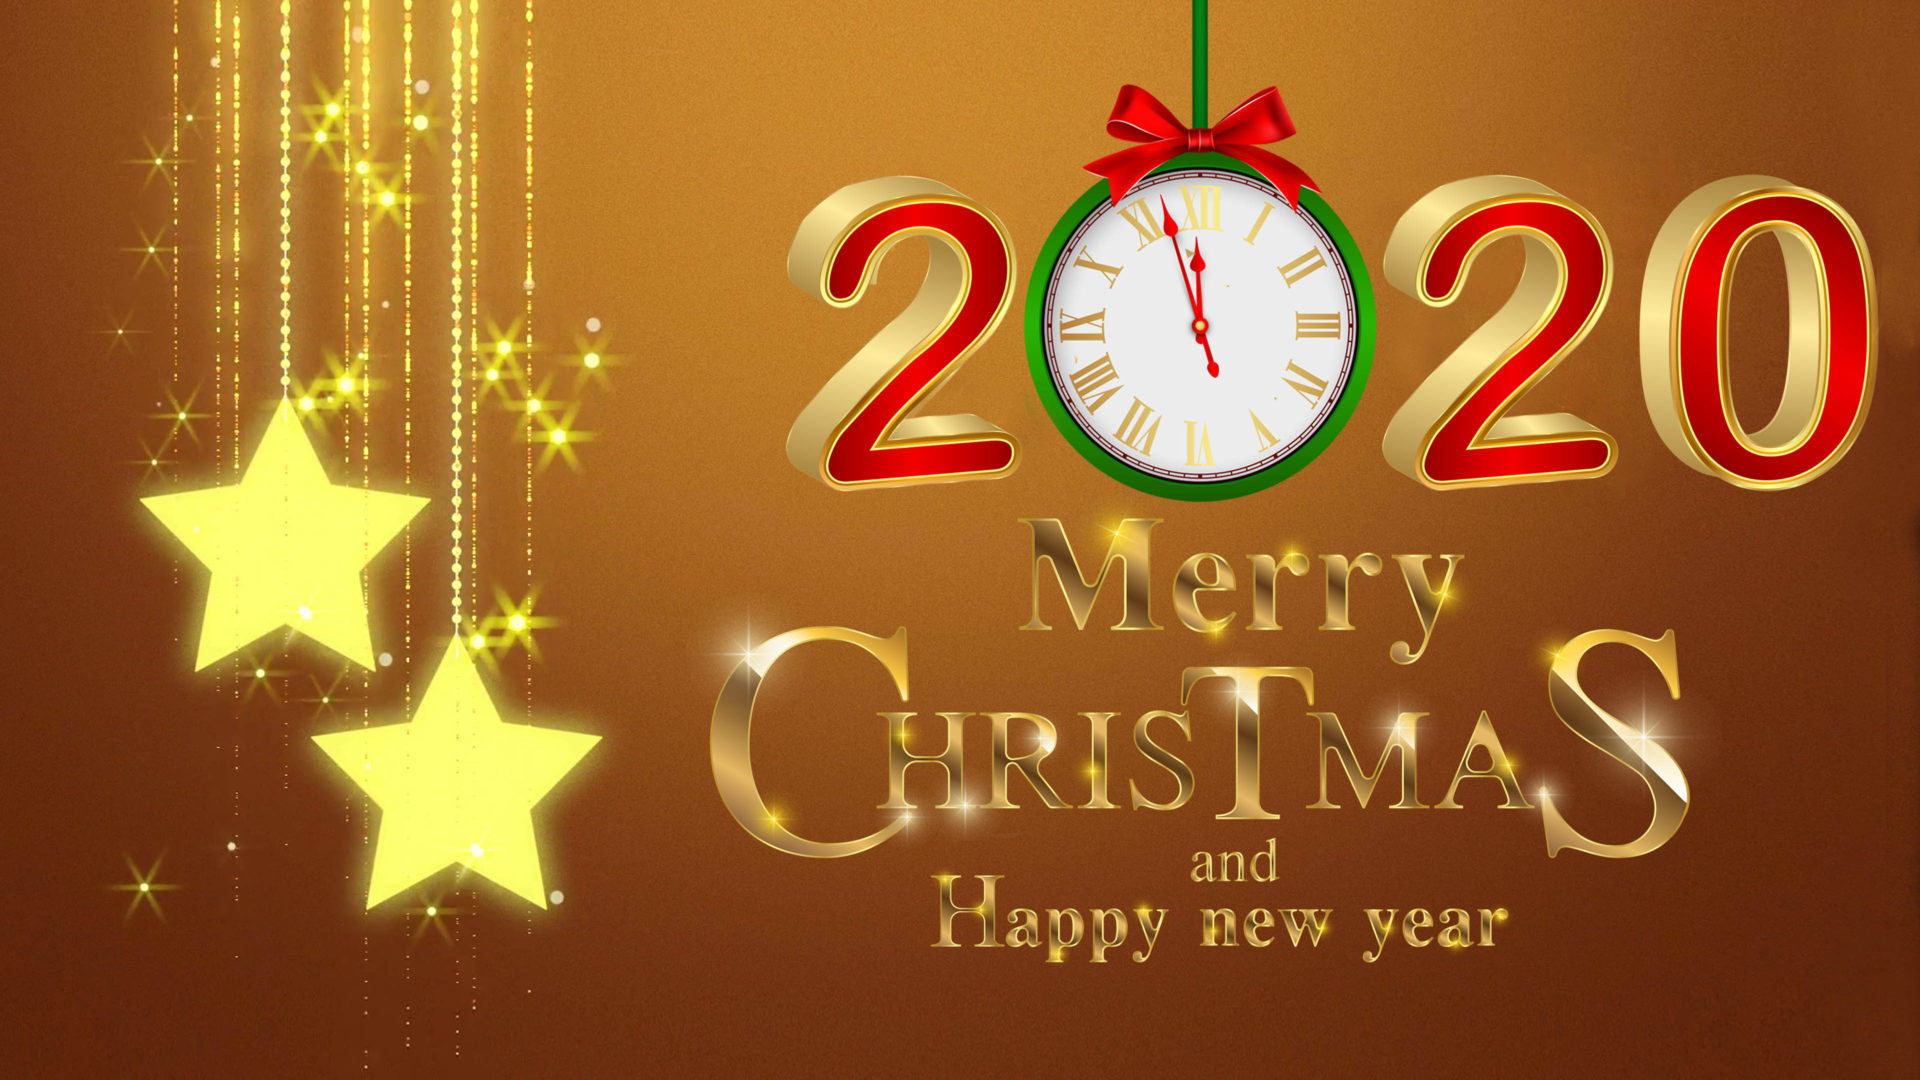 Merry Christmas And Happy New Year 2020 Gold 4k Ultra Hd Desktop 1920x1080